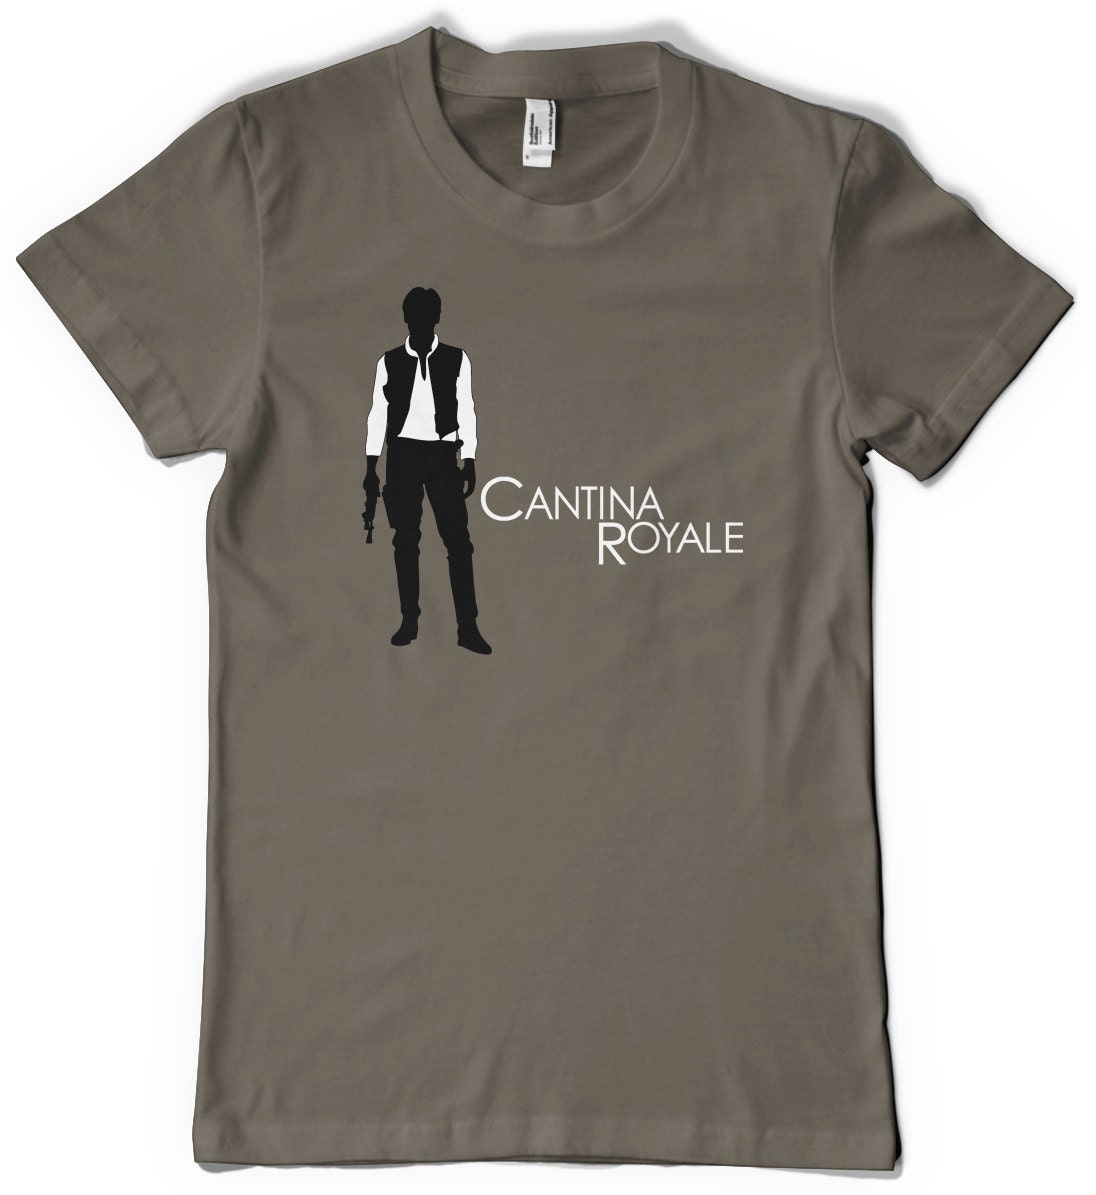 Cantina Royale / Star Wars - James Bond inspired t-shirt